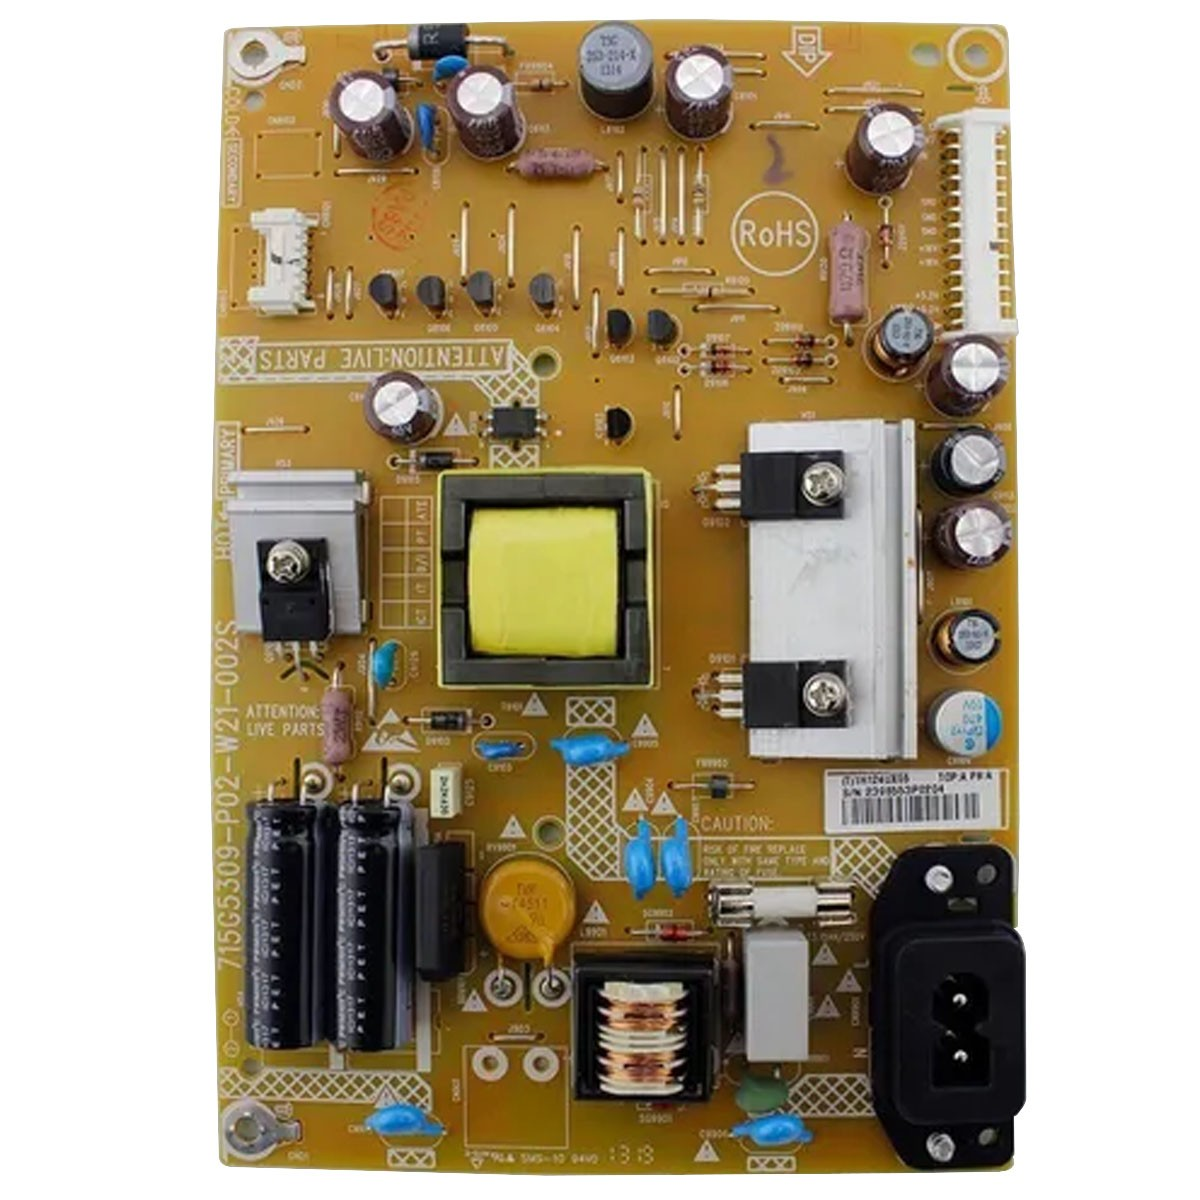 Placa Fonte TV Philips Pn 715g5309-p02-w21-002s - Nova